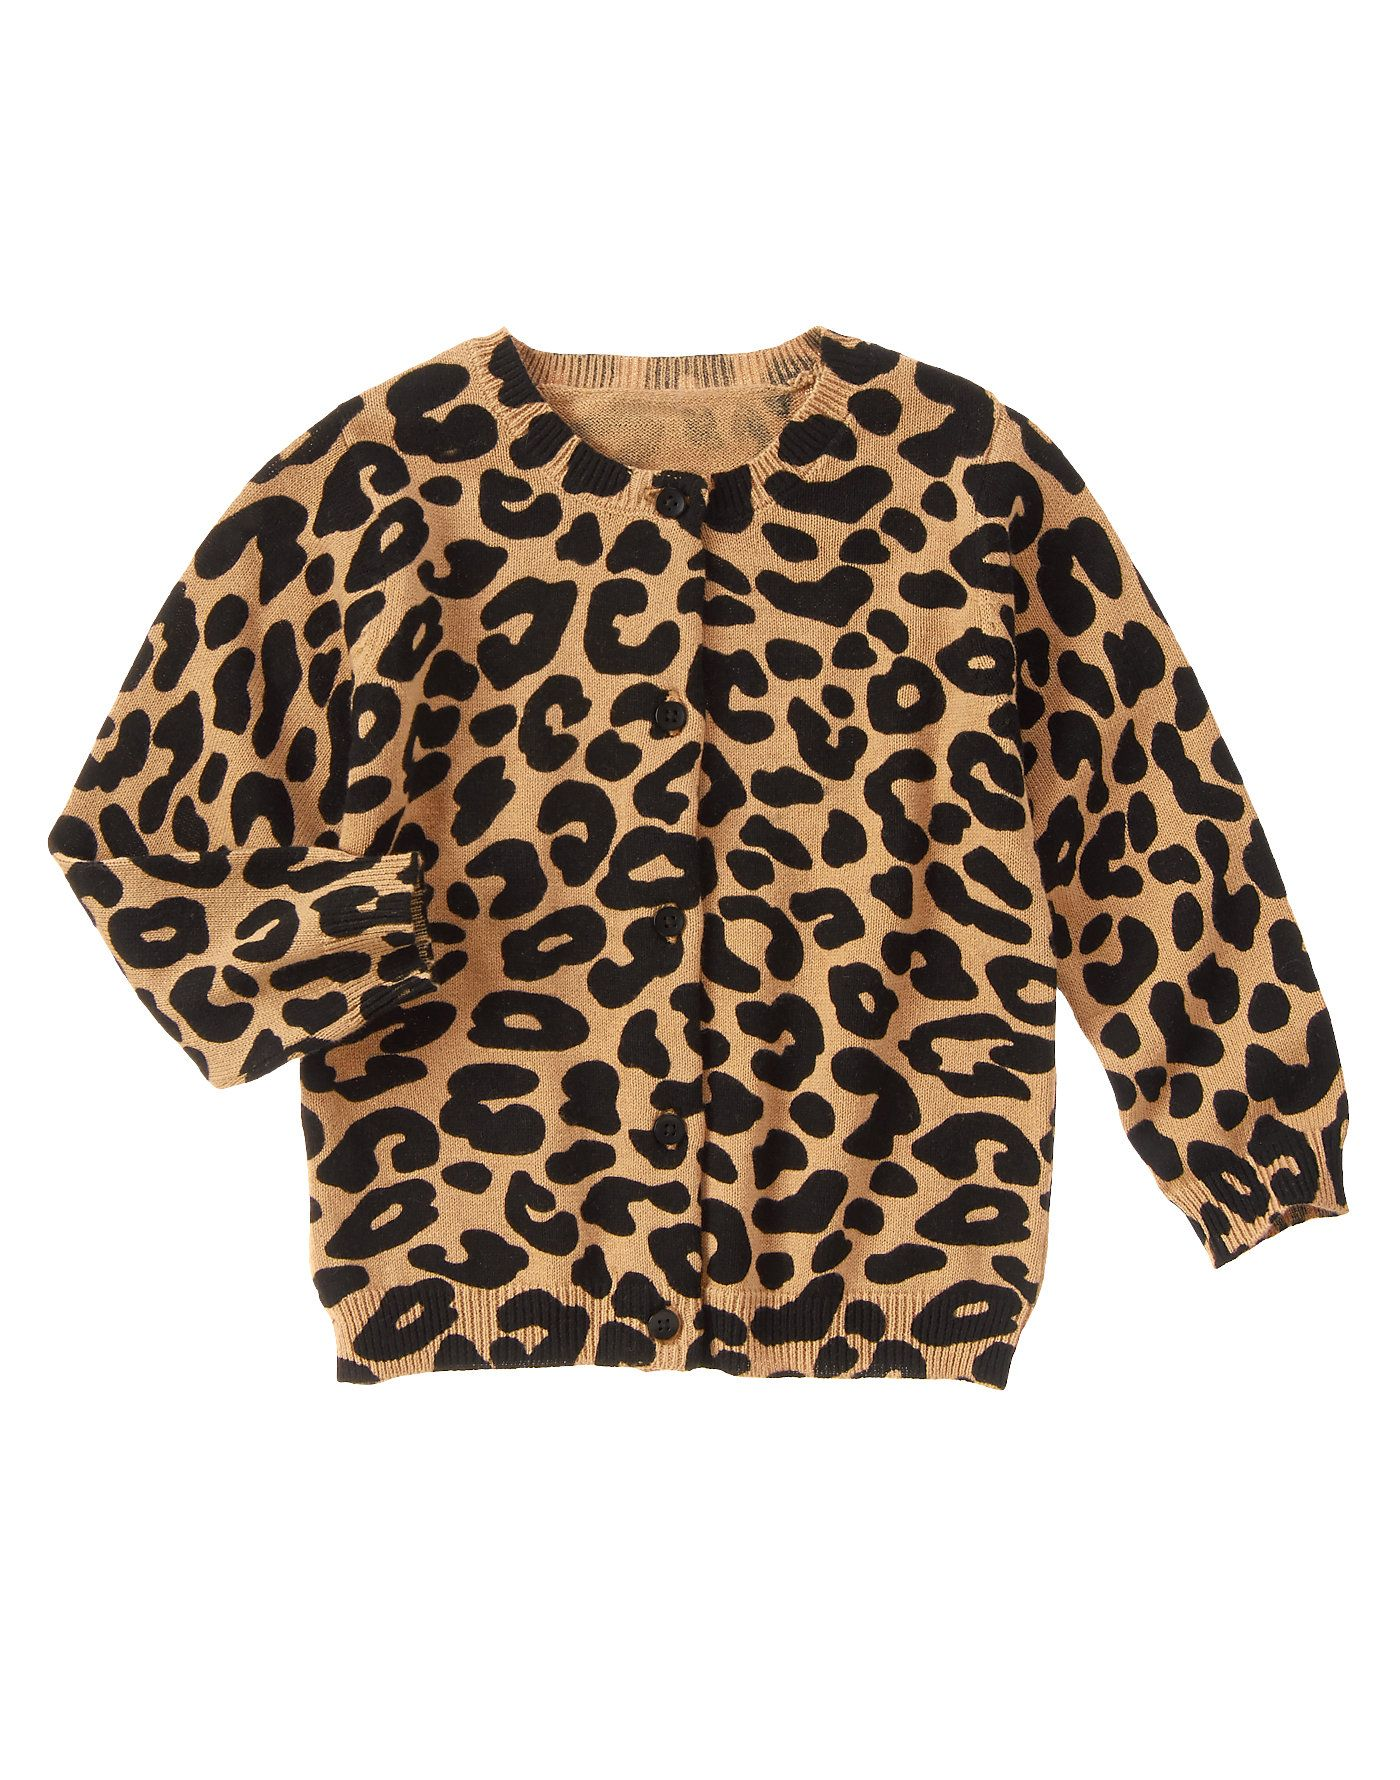 Leopard Cardigan at Gymboree (Gymboree 3m-5T) | Baby | Pinterest ...